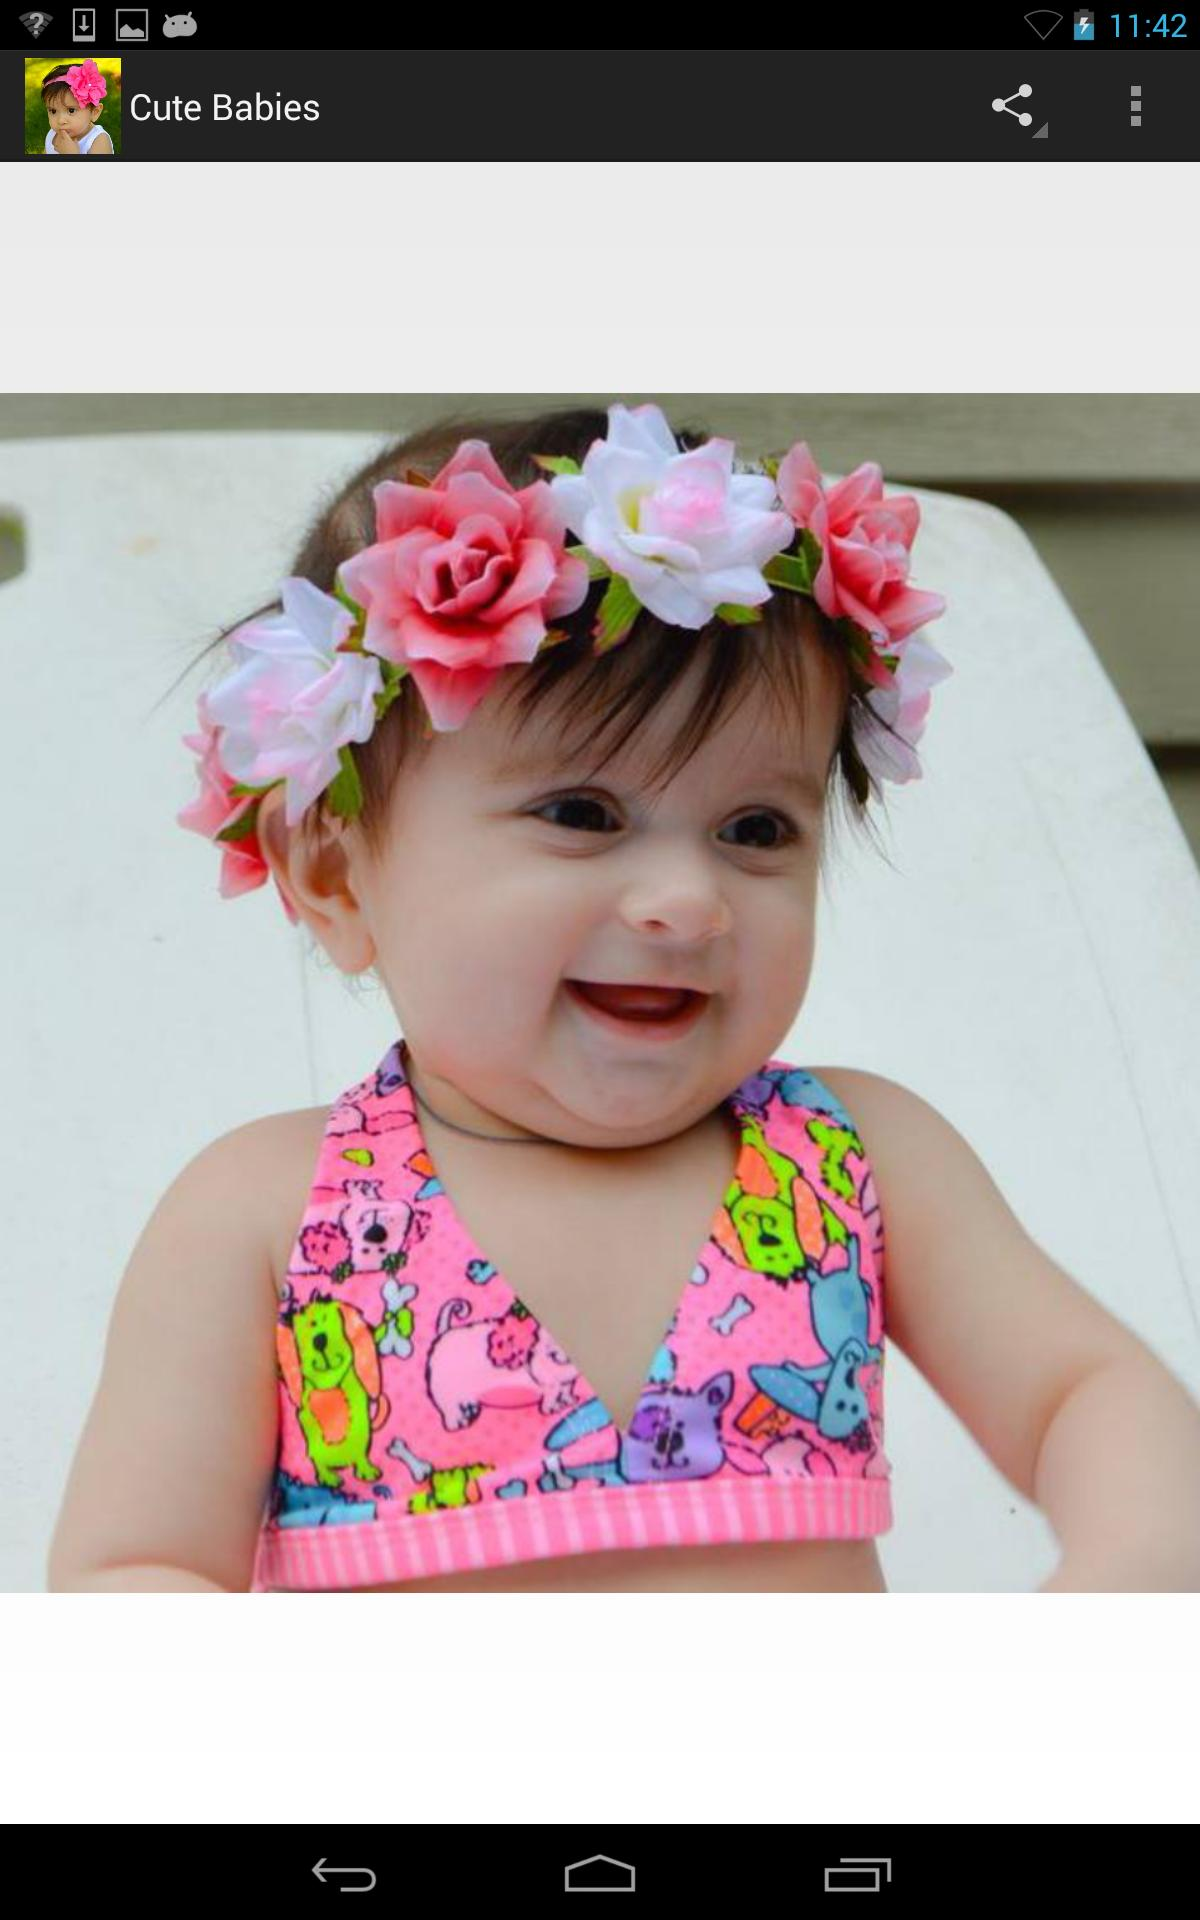 Cute baby wallpaper gallery poster